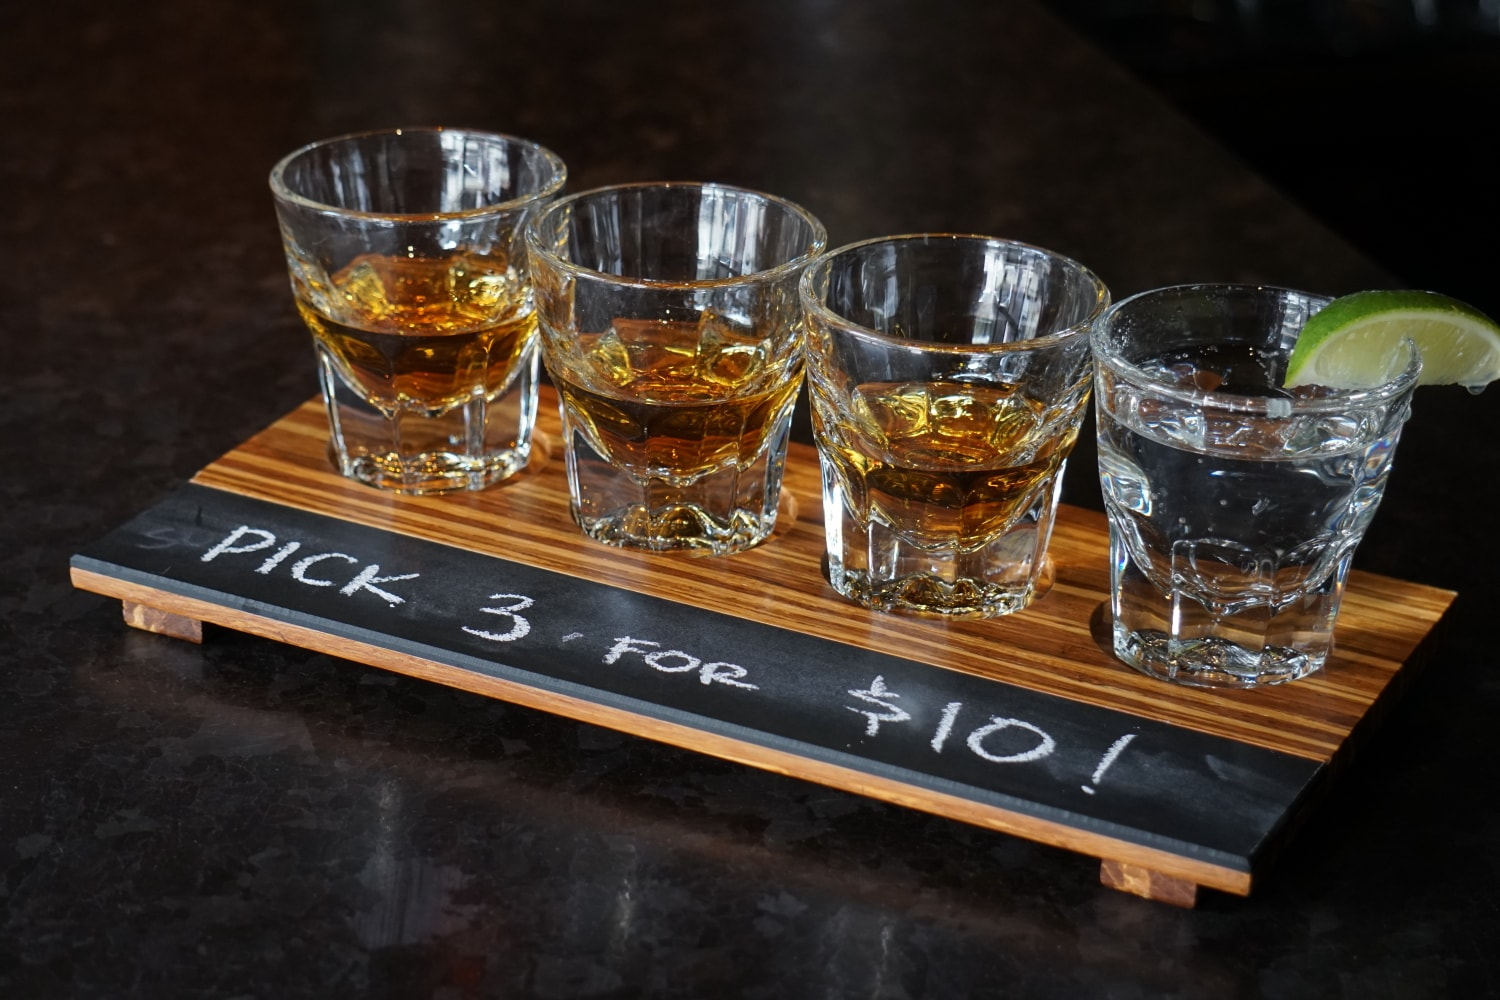 Try Our 3 Pour Whiskey Flights for only $10